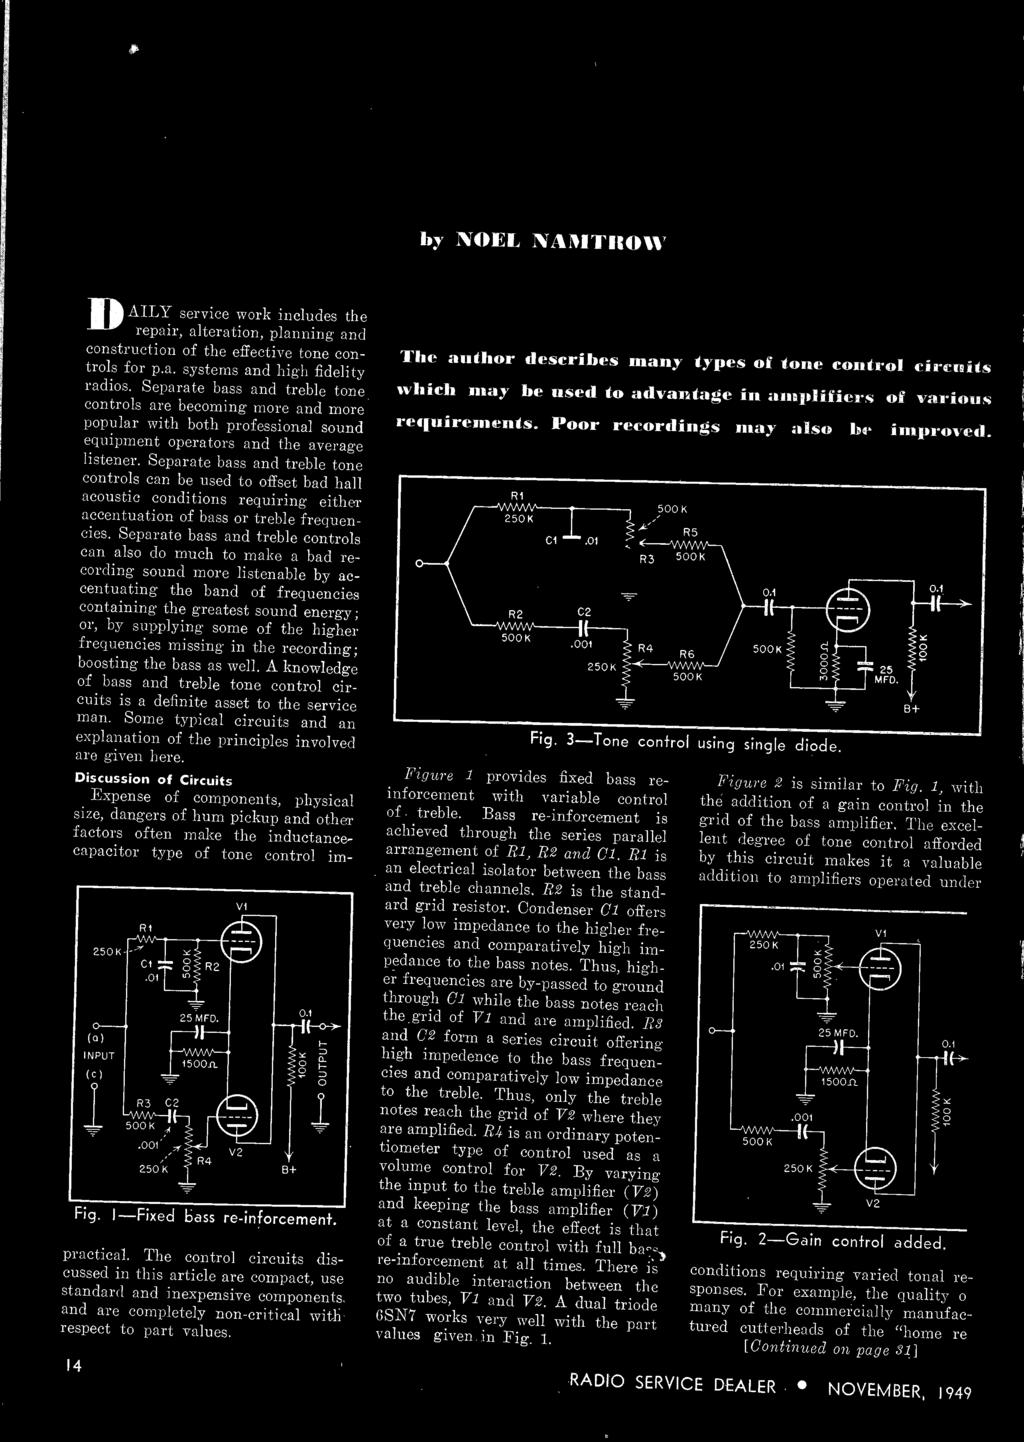 Sion Fm Tv Sou N This Issue November 1949 A Wide Range Impedance Passive Tone Control Network Permits The Listener To Discussion Of Circuits Expense Components Physical Size Dangers Hum Pickup And Other 16 Controls